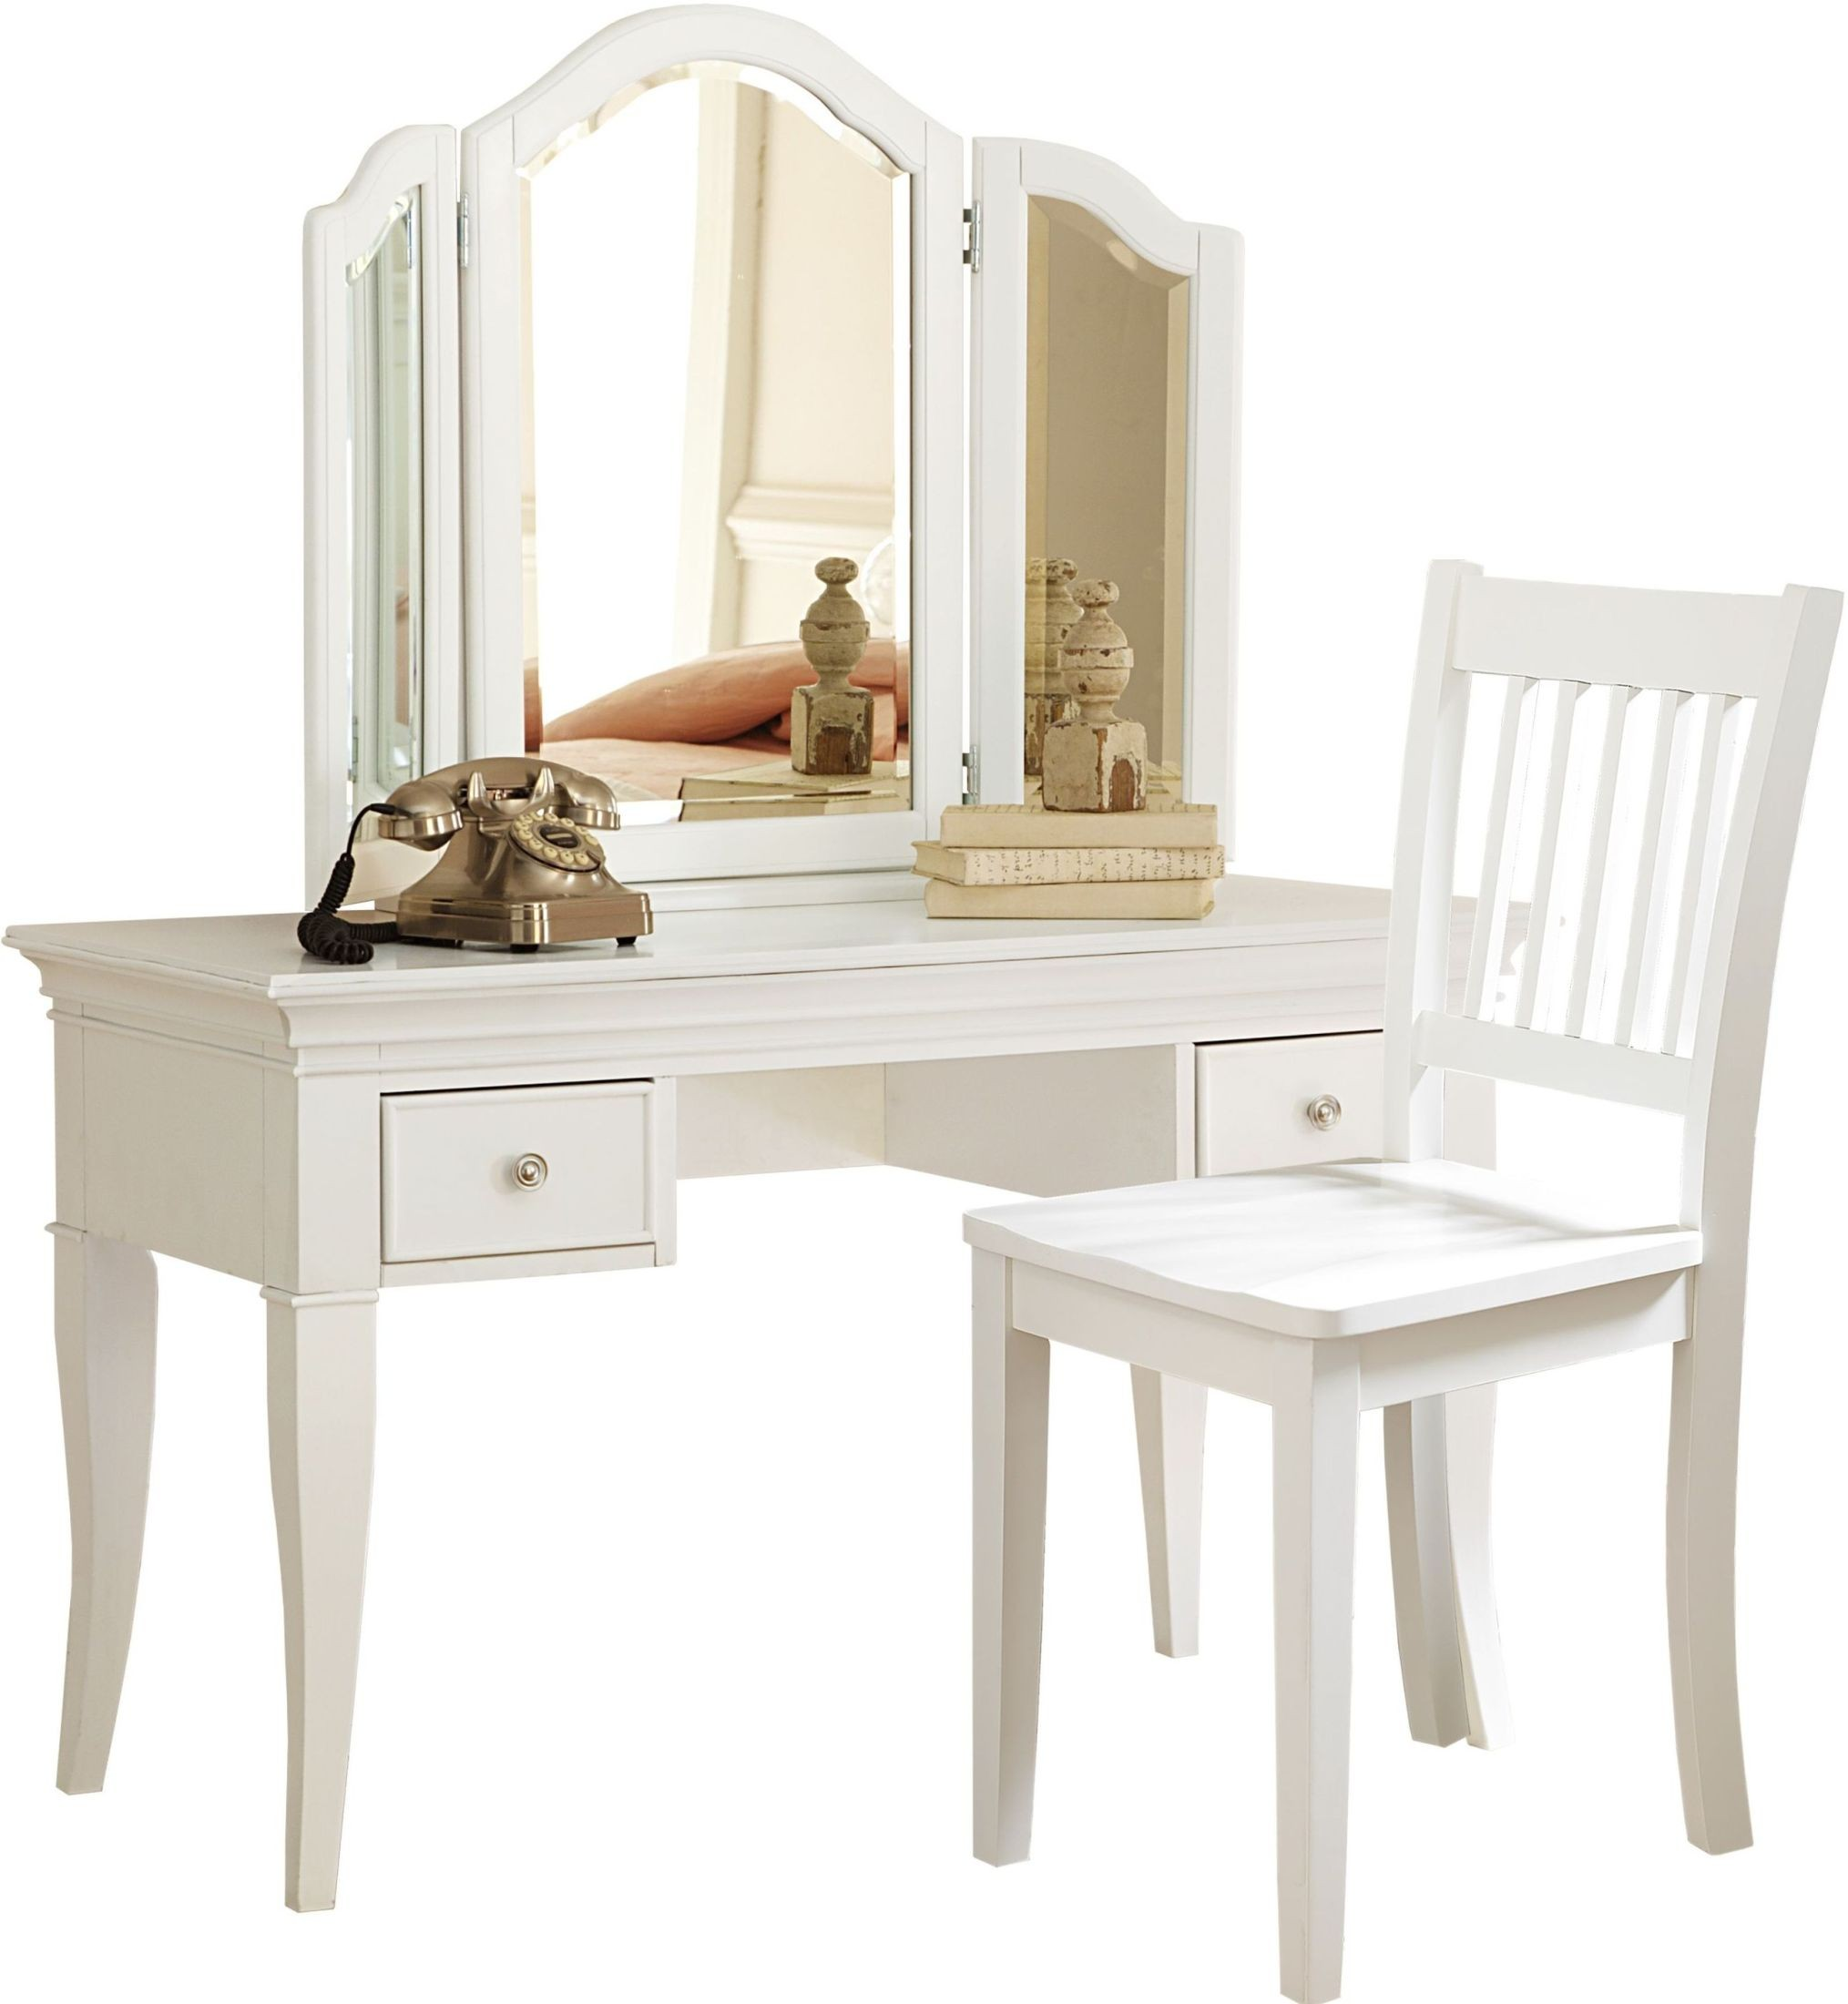 White Desk And Chair Walnut Street White Desk And Storage Vanity With Mirror